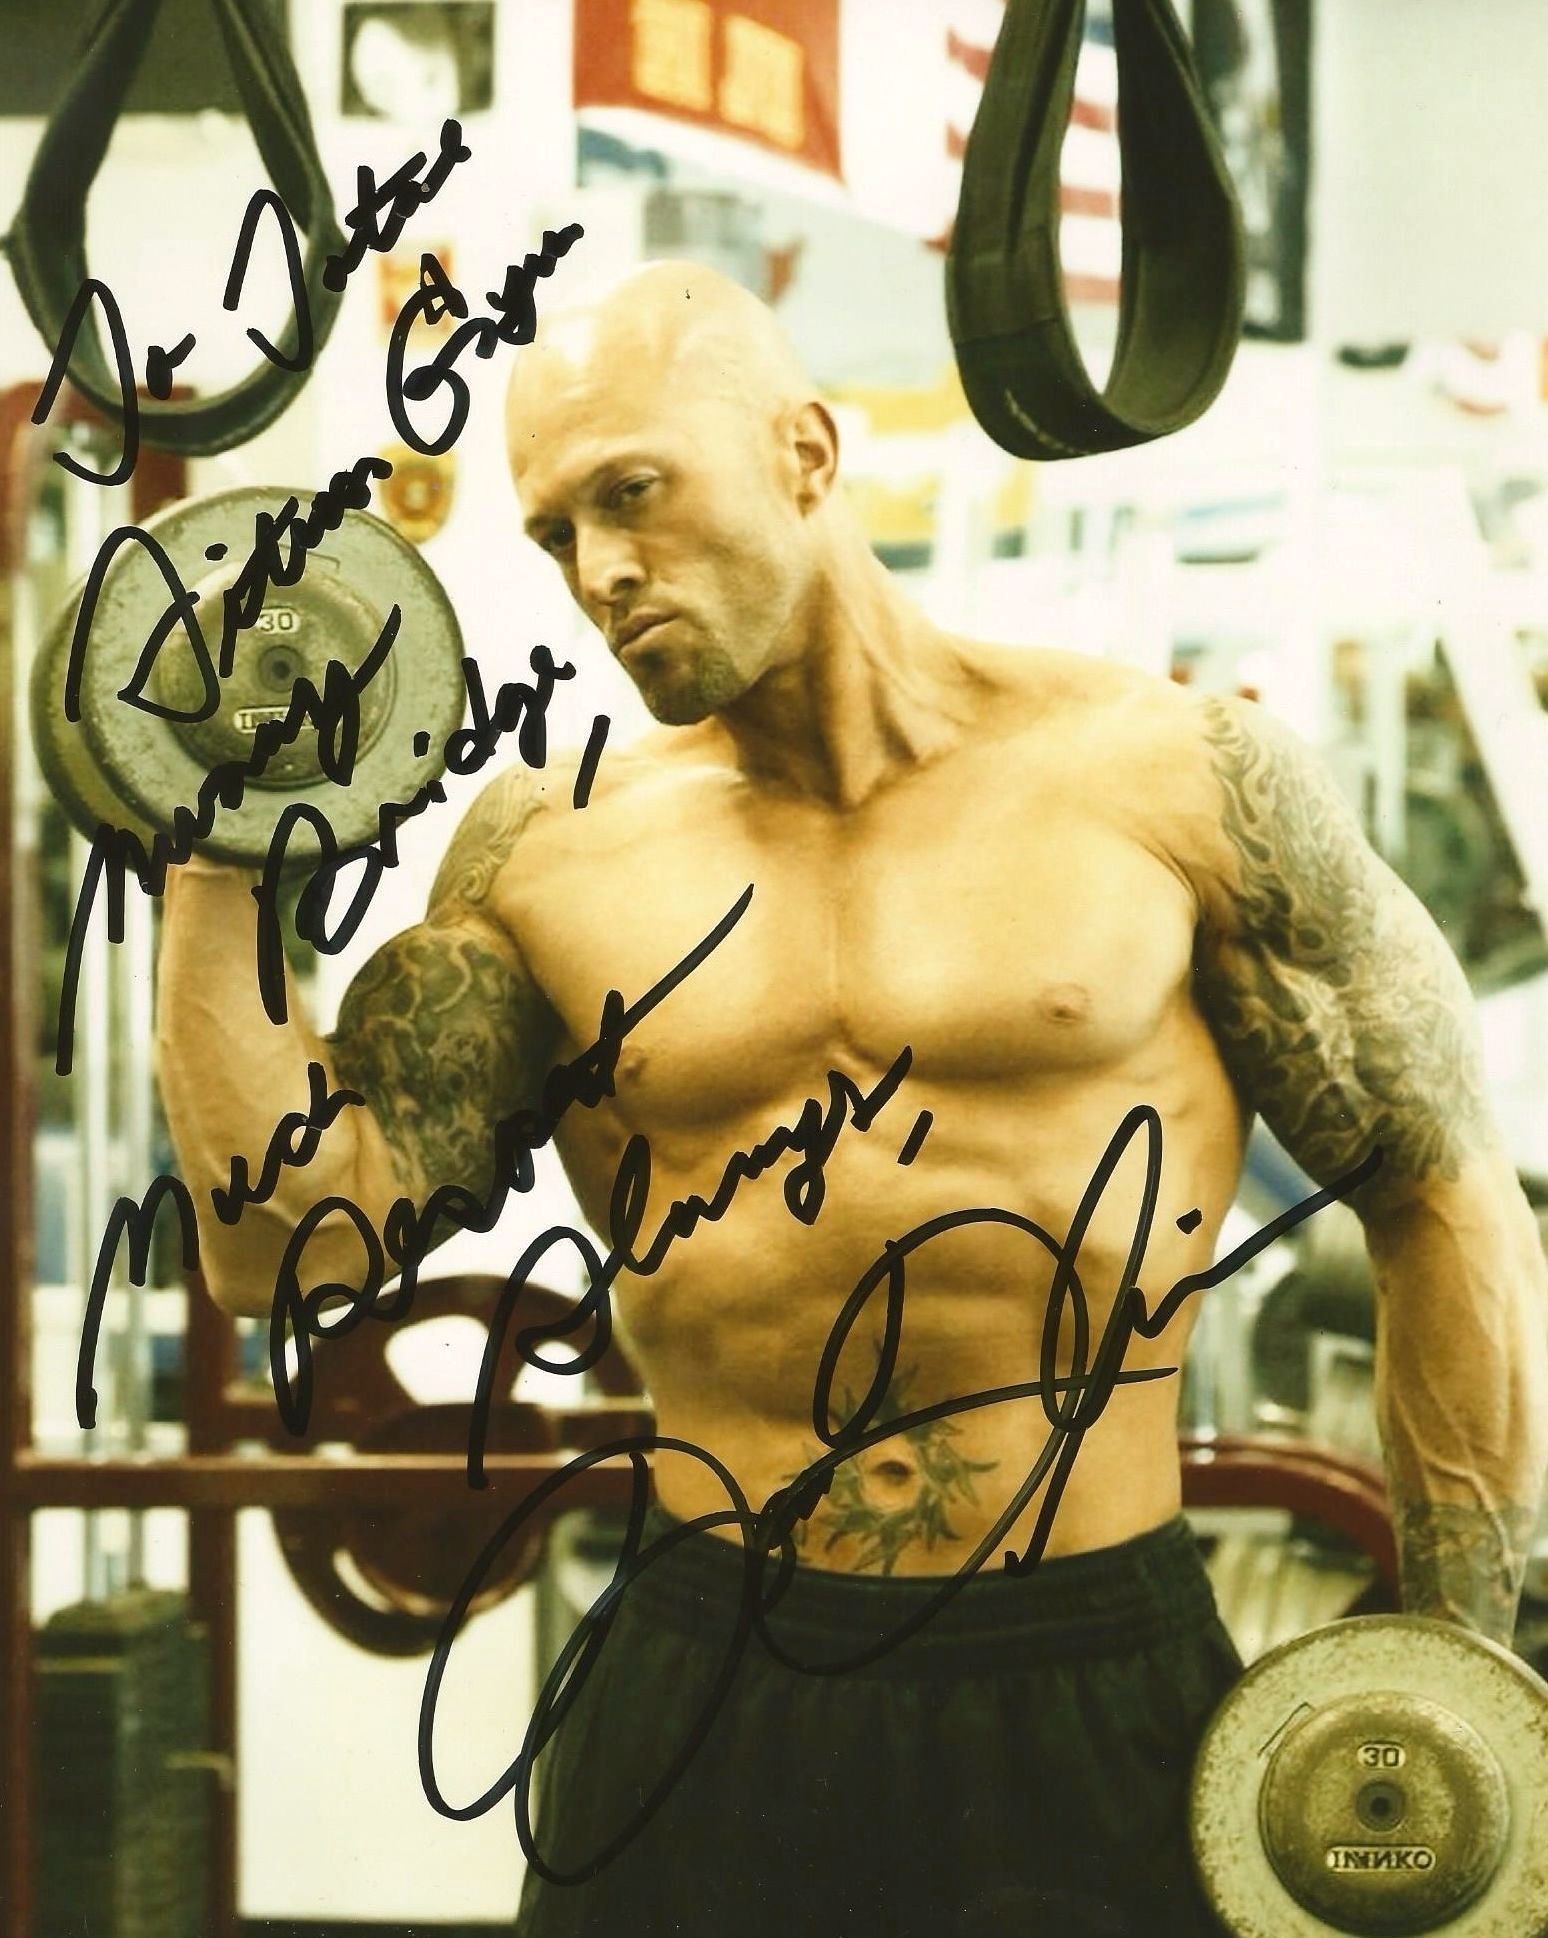 Tattooed Fitness Physique Model & Actor John Joseph Quinlan Signed 8x10 Autograph to Total Fitness Gym Murray Bridge Australia. #JohnQuinlan